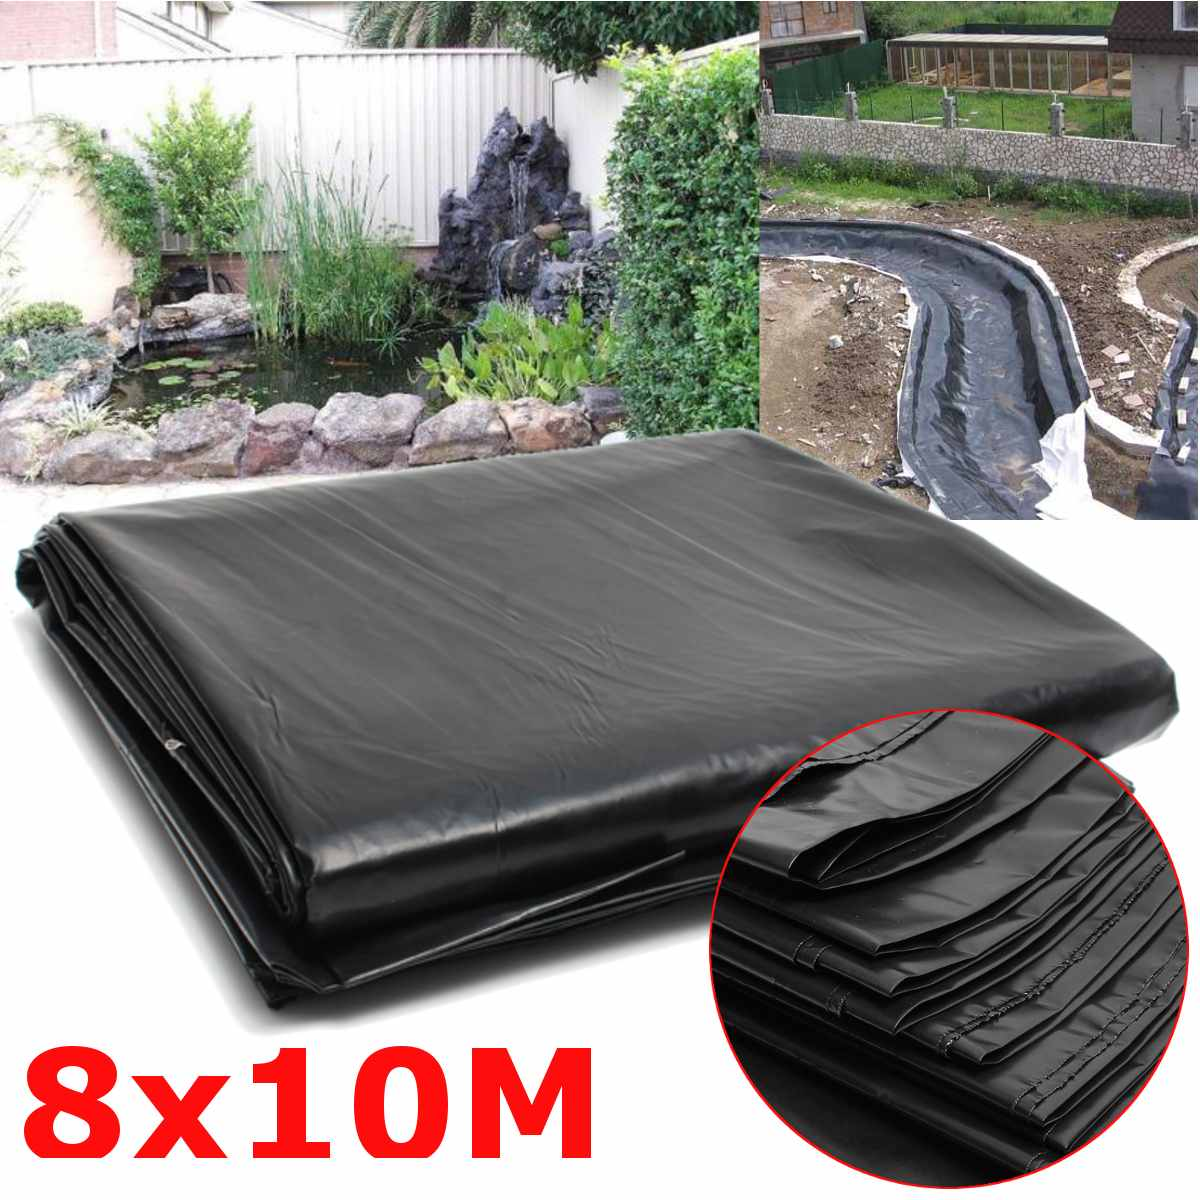 8x10m 0.12MM Fish Pond Liner Cloth Home Garden Pool Reinforced HDPE Heavy   Landscaping Pool Pond Waterproof Liner Cloth